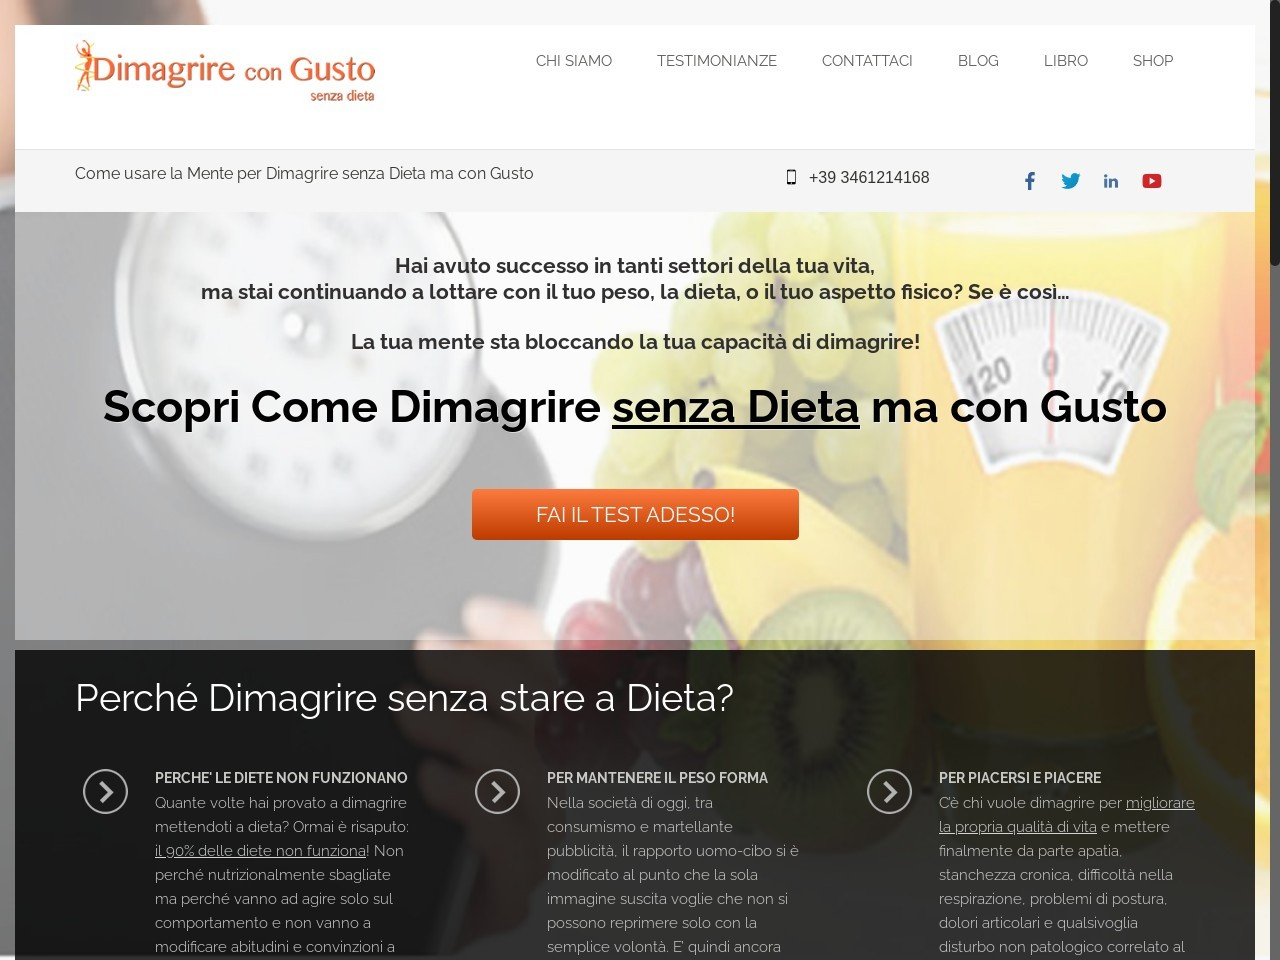 dimagrire-con-gusto